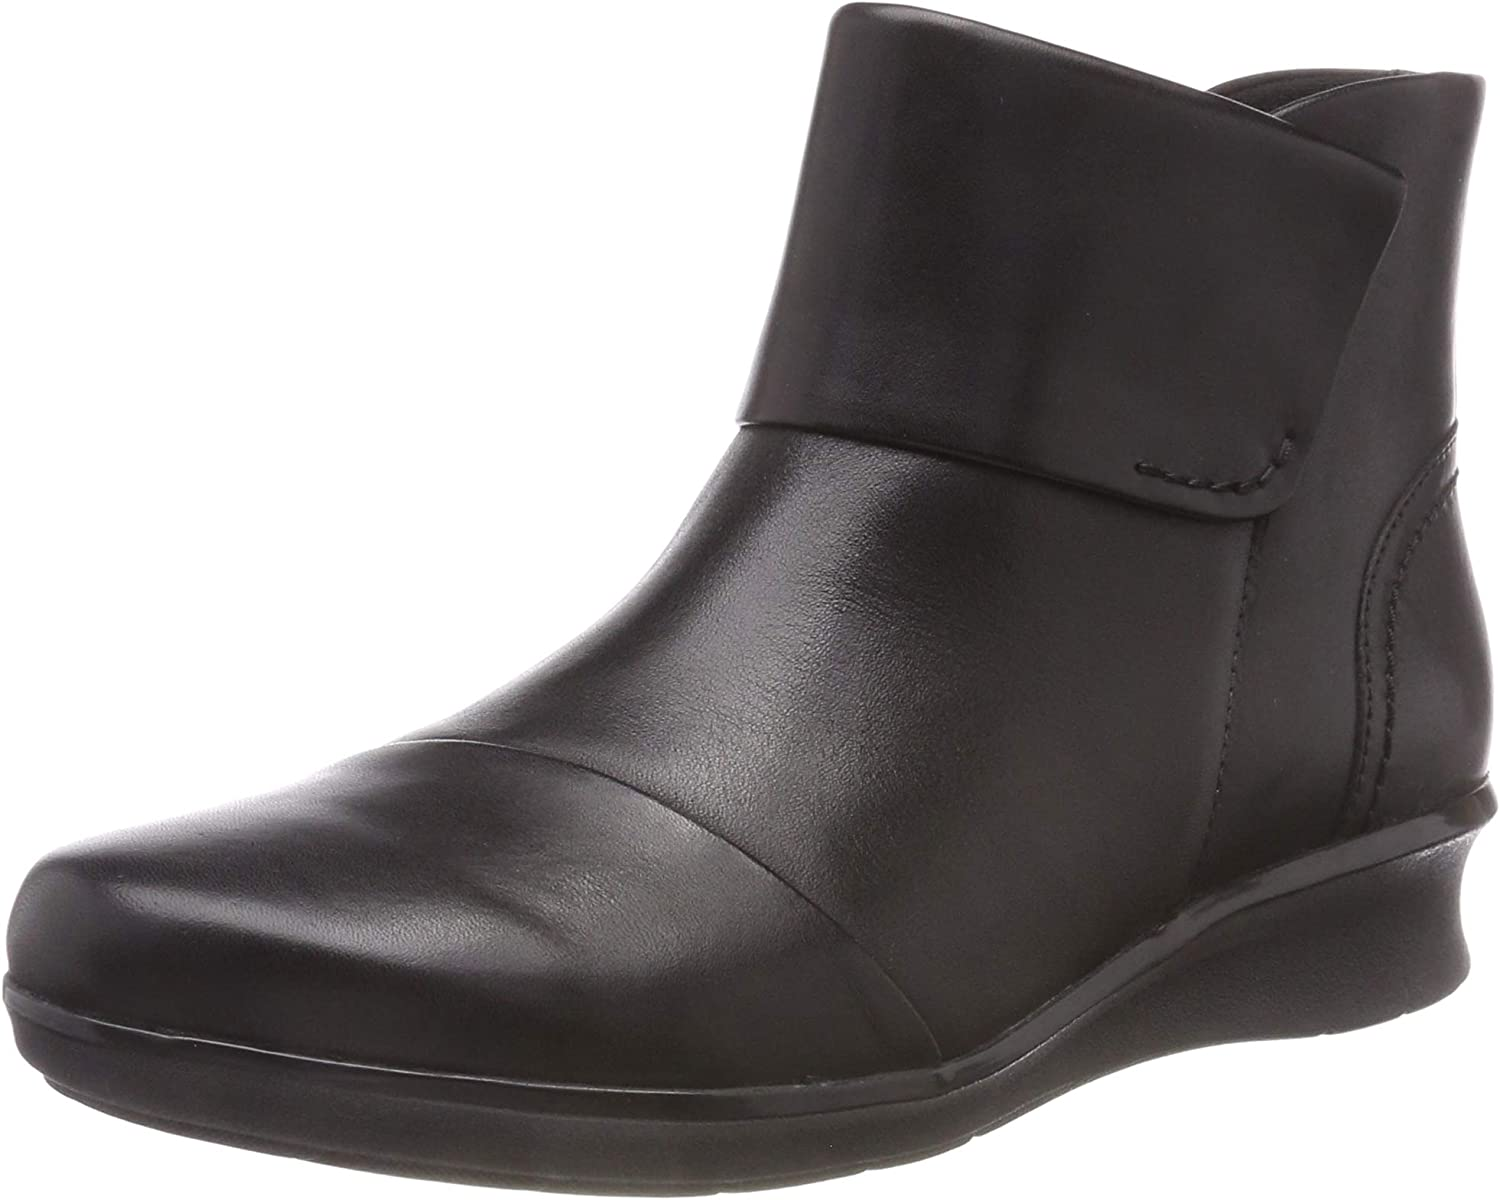 Clarks Women's Hope Track Black Leather Wedge Ankle Boots